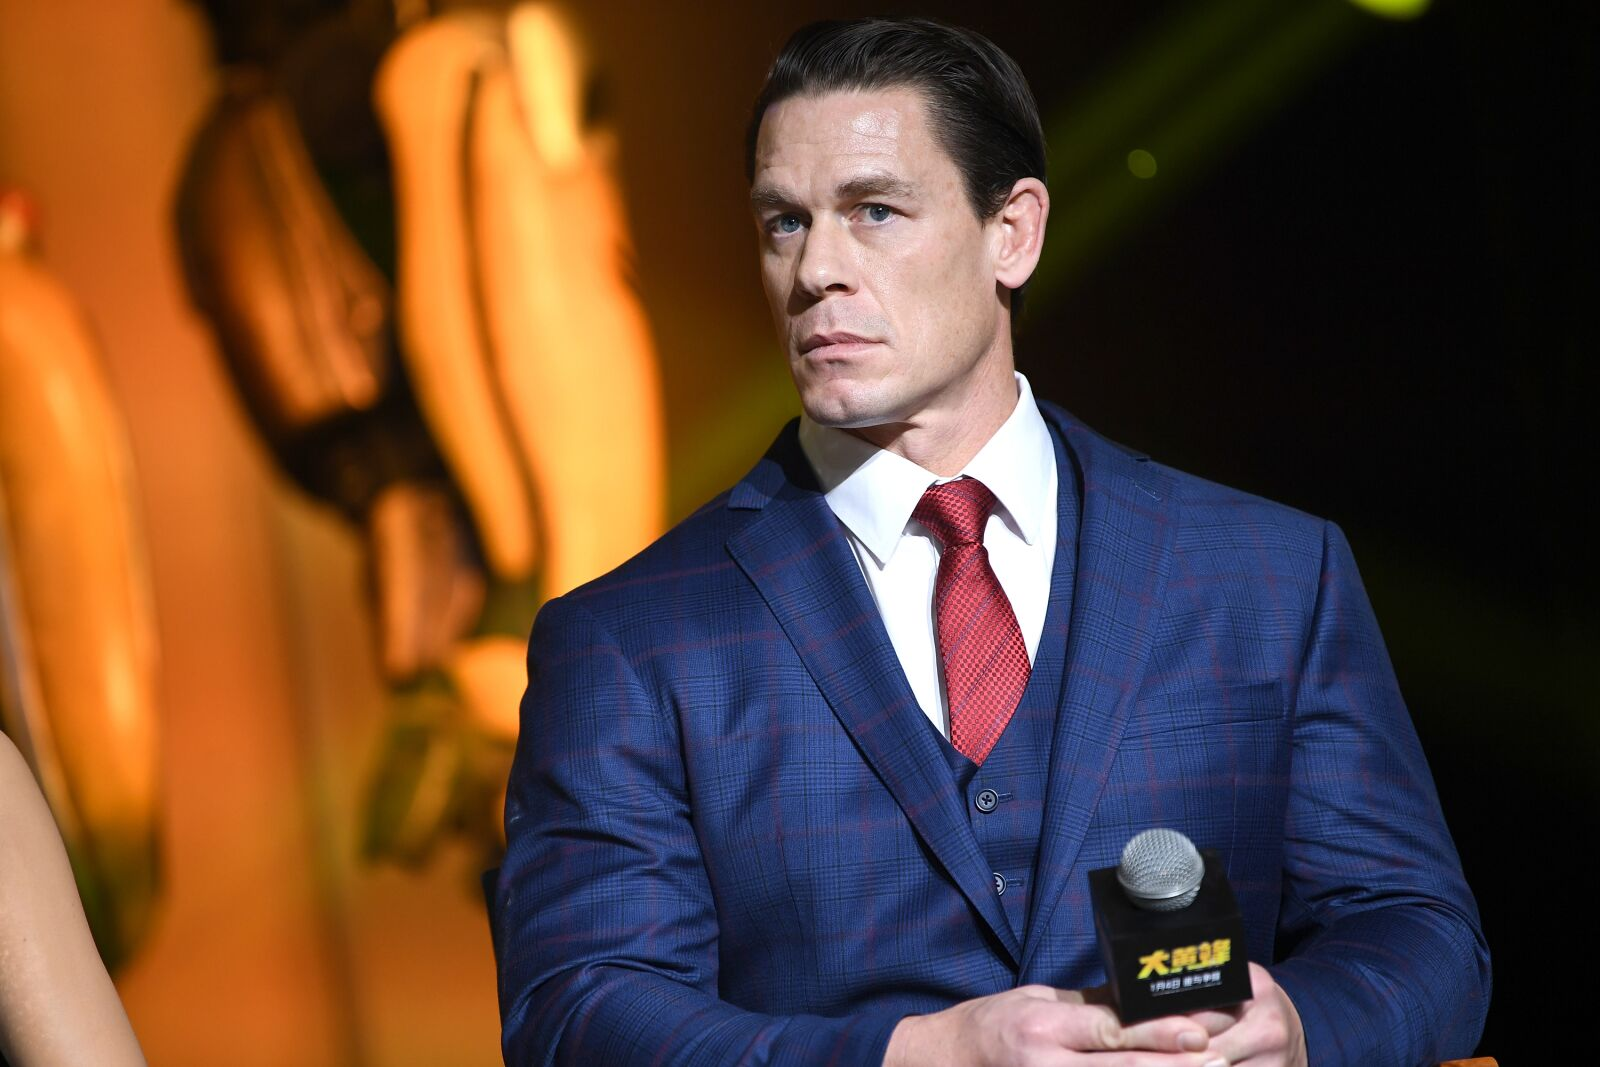 BEIJING, CHINA - DECEMBER 14: John Cena attends Paramount Pictures' Beijing press conference for 'Bumblebee' on December 14, 2018 in Beijing, China. (Photo by Yanshan Zhang/Getty Images for Paramount Pictures)